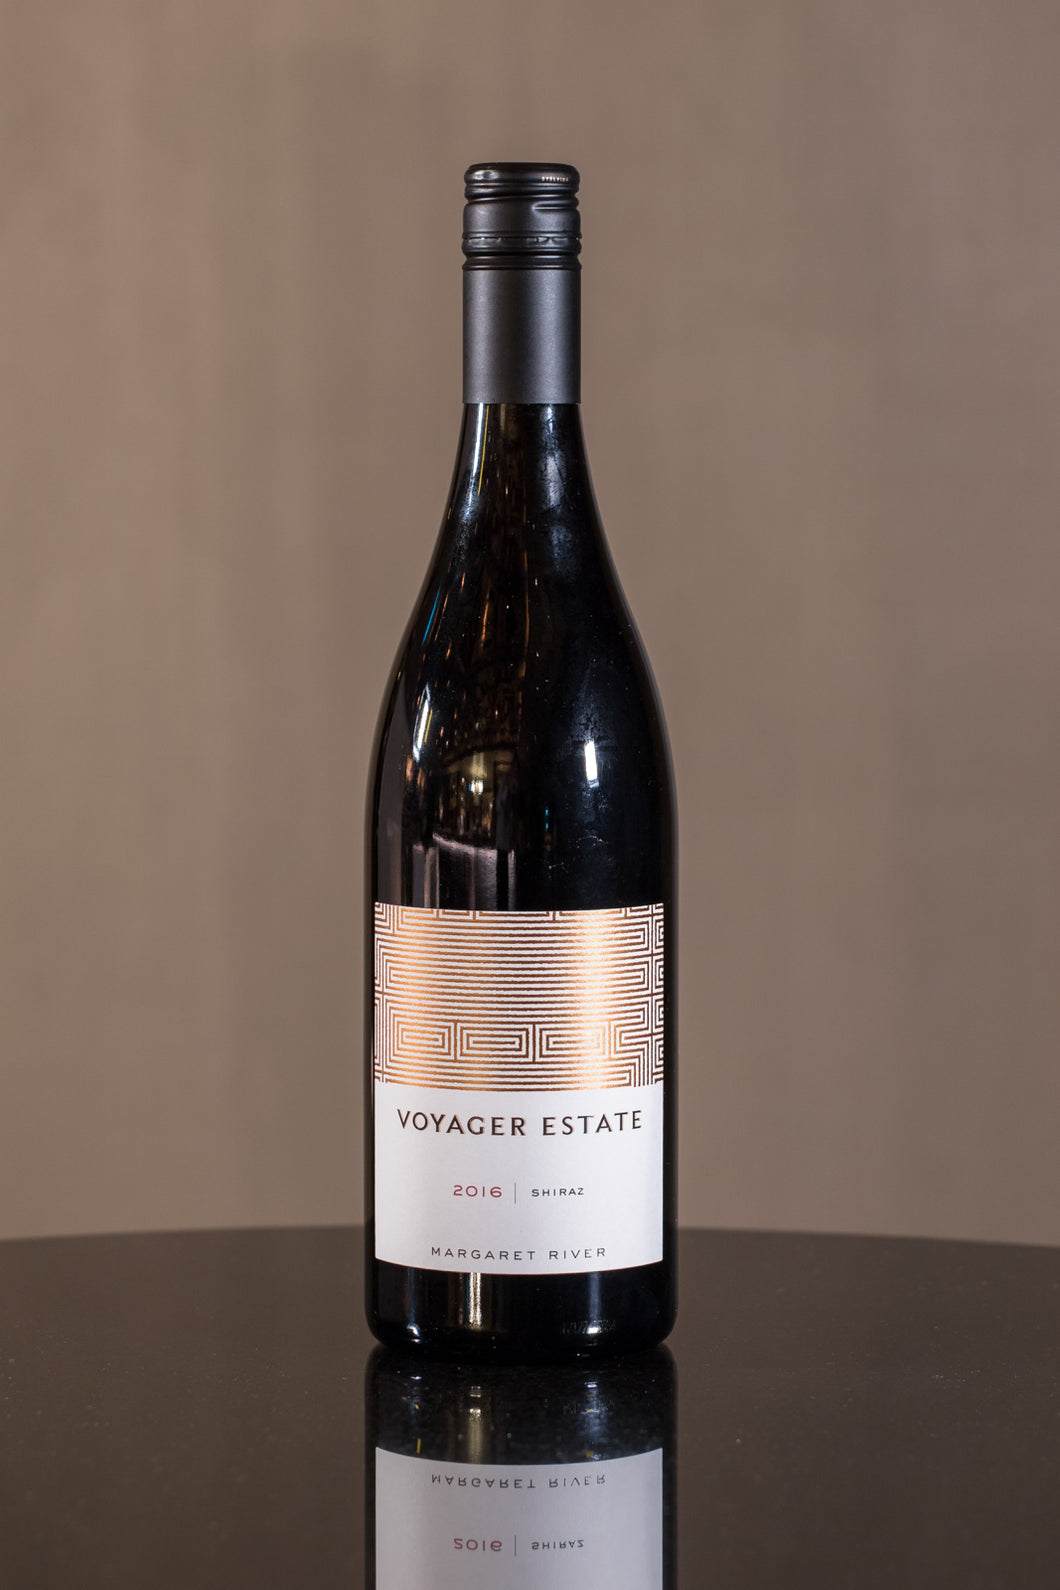 Voyager Estate, Shiraz